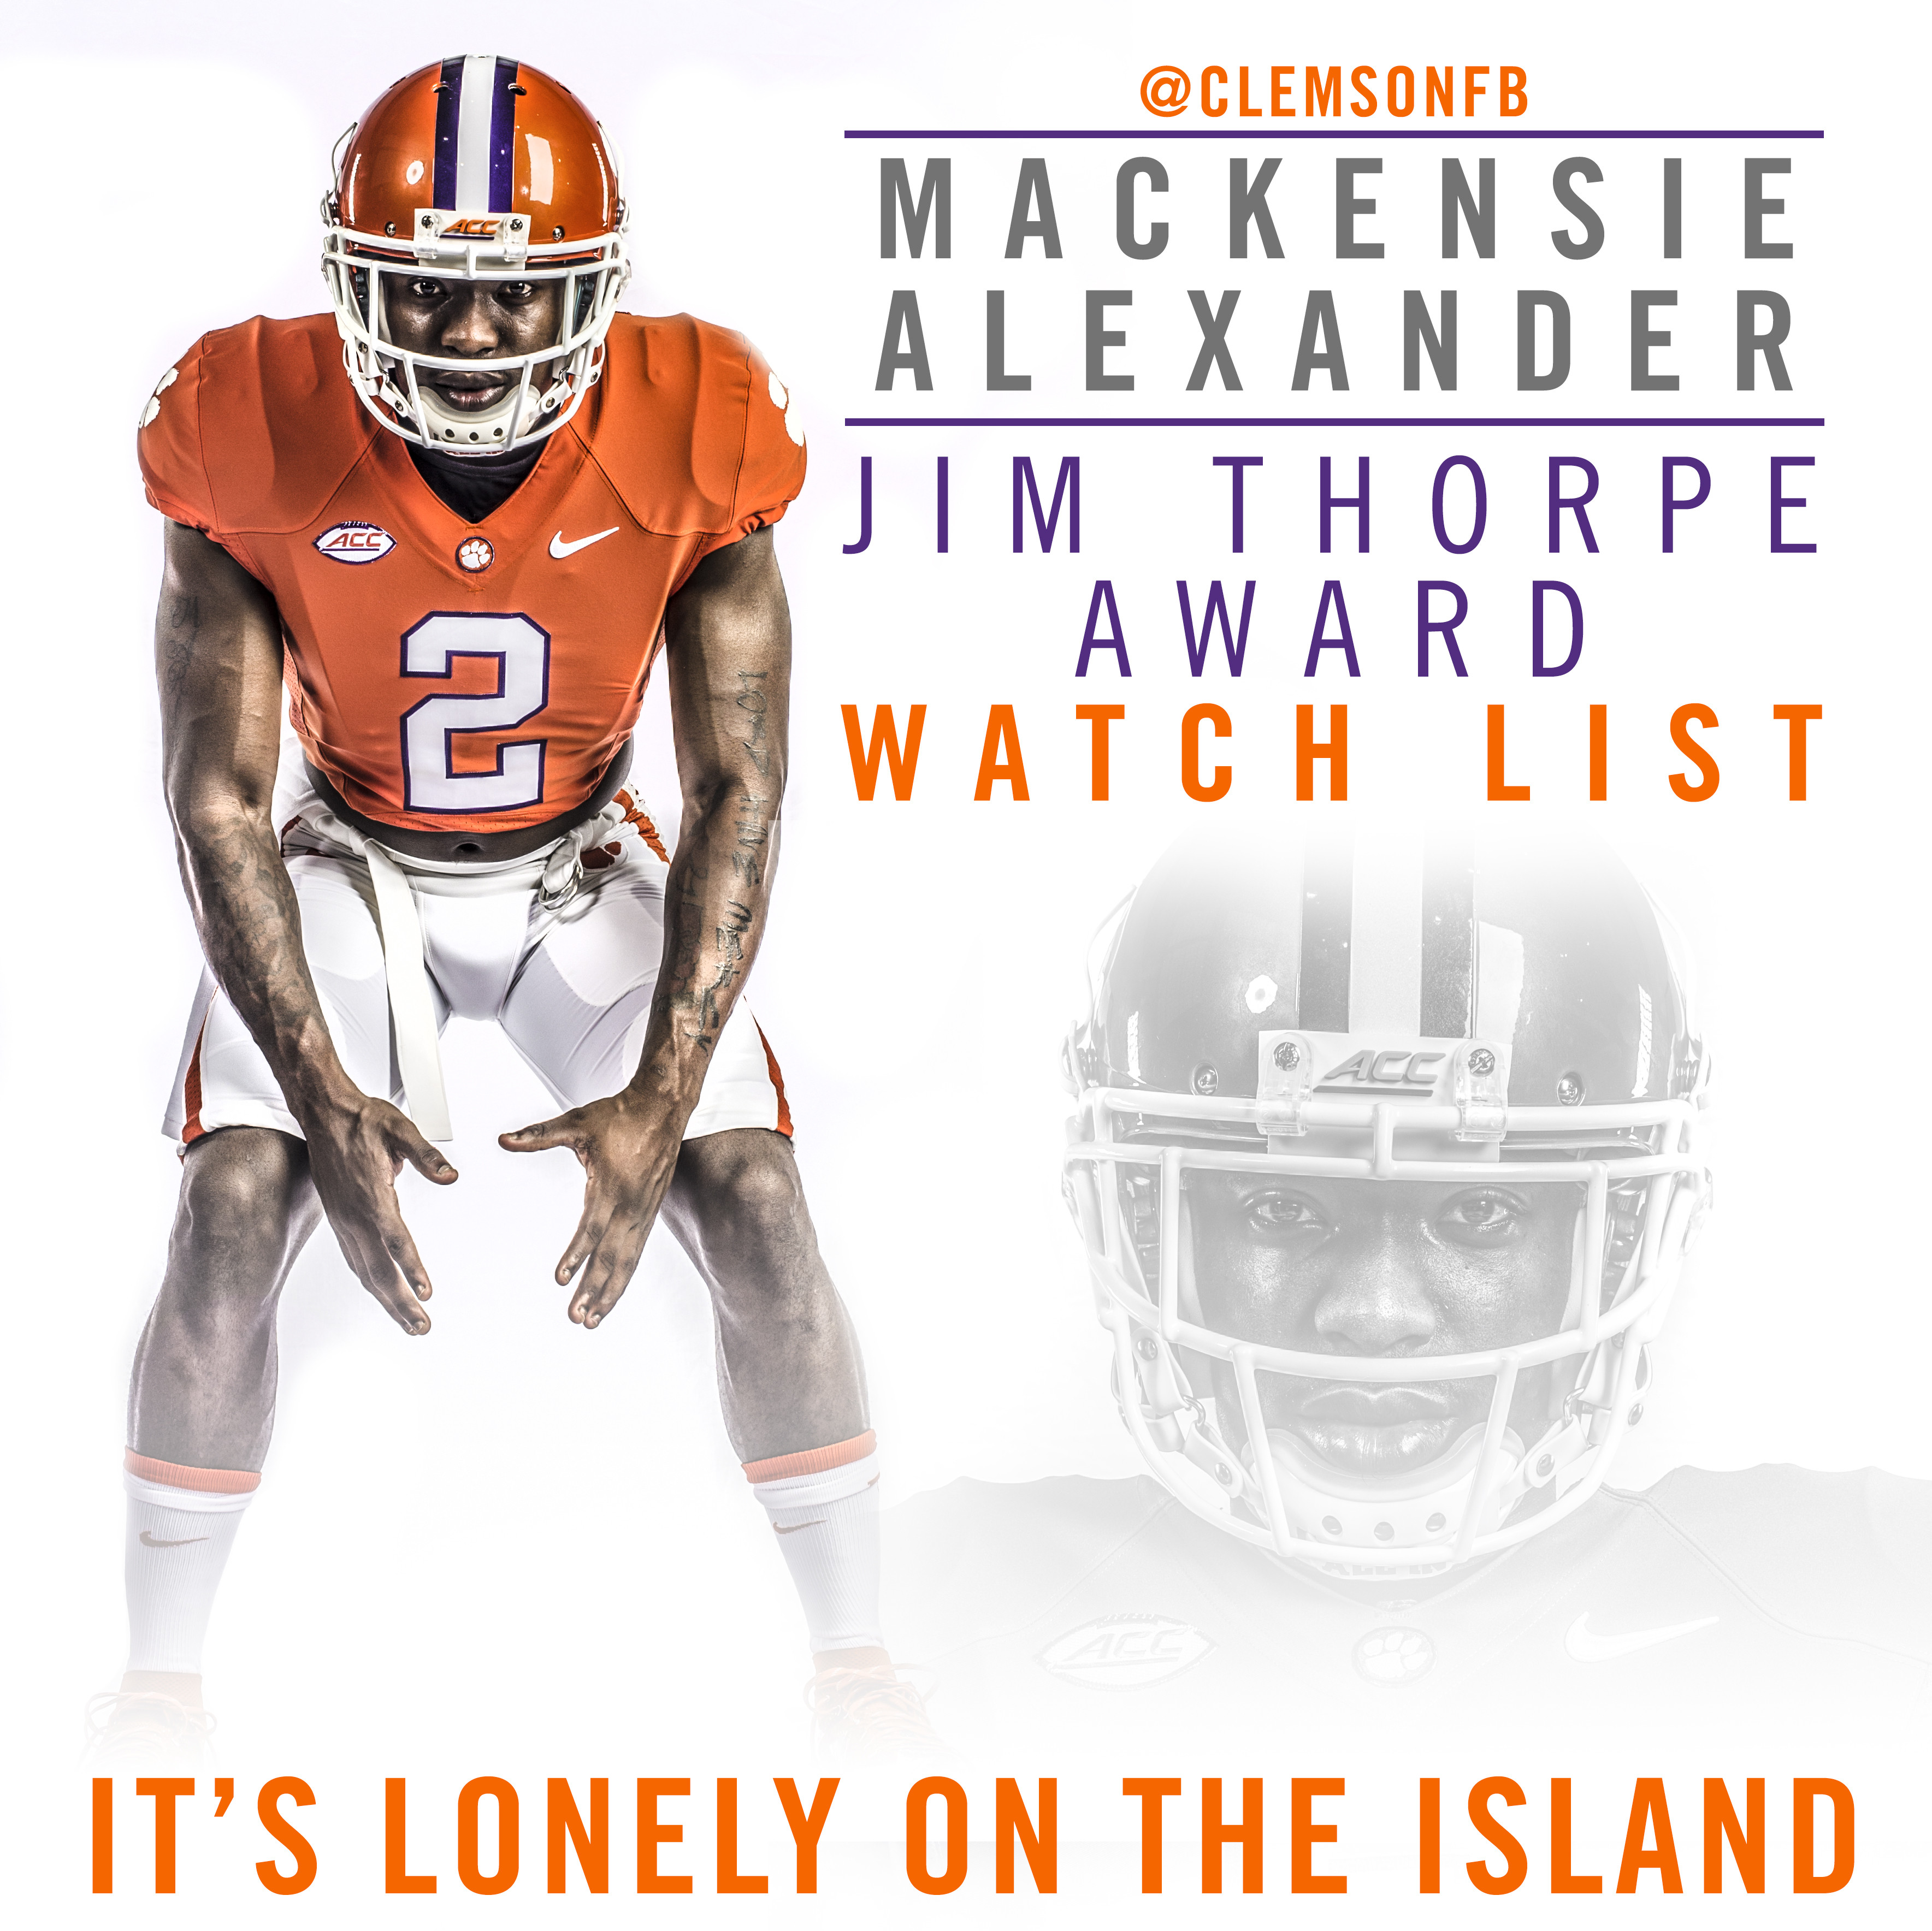 Alexander Named to Thorpe Watch List